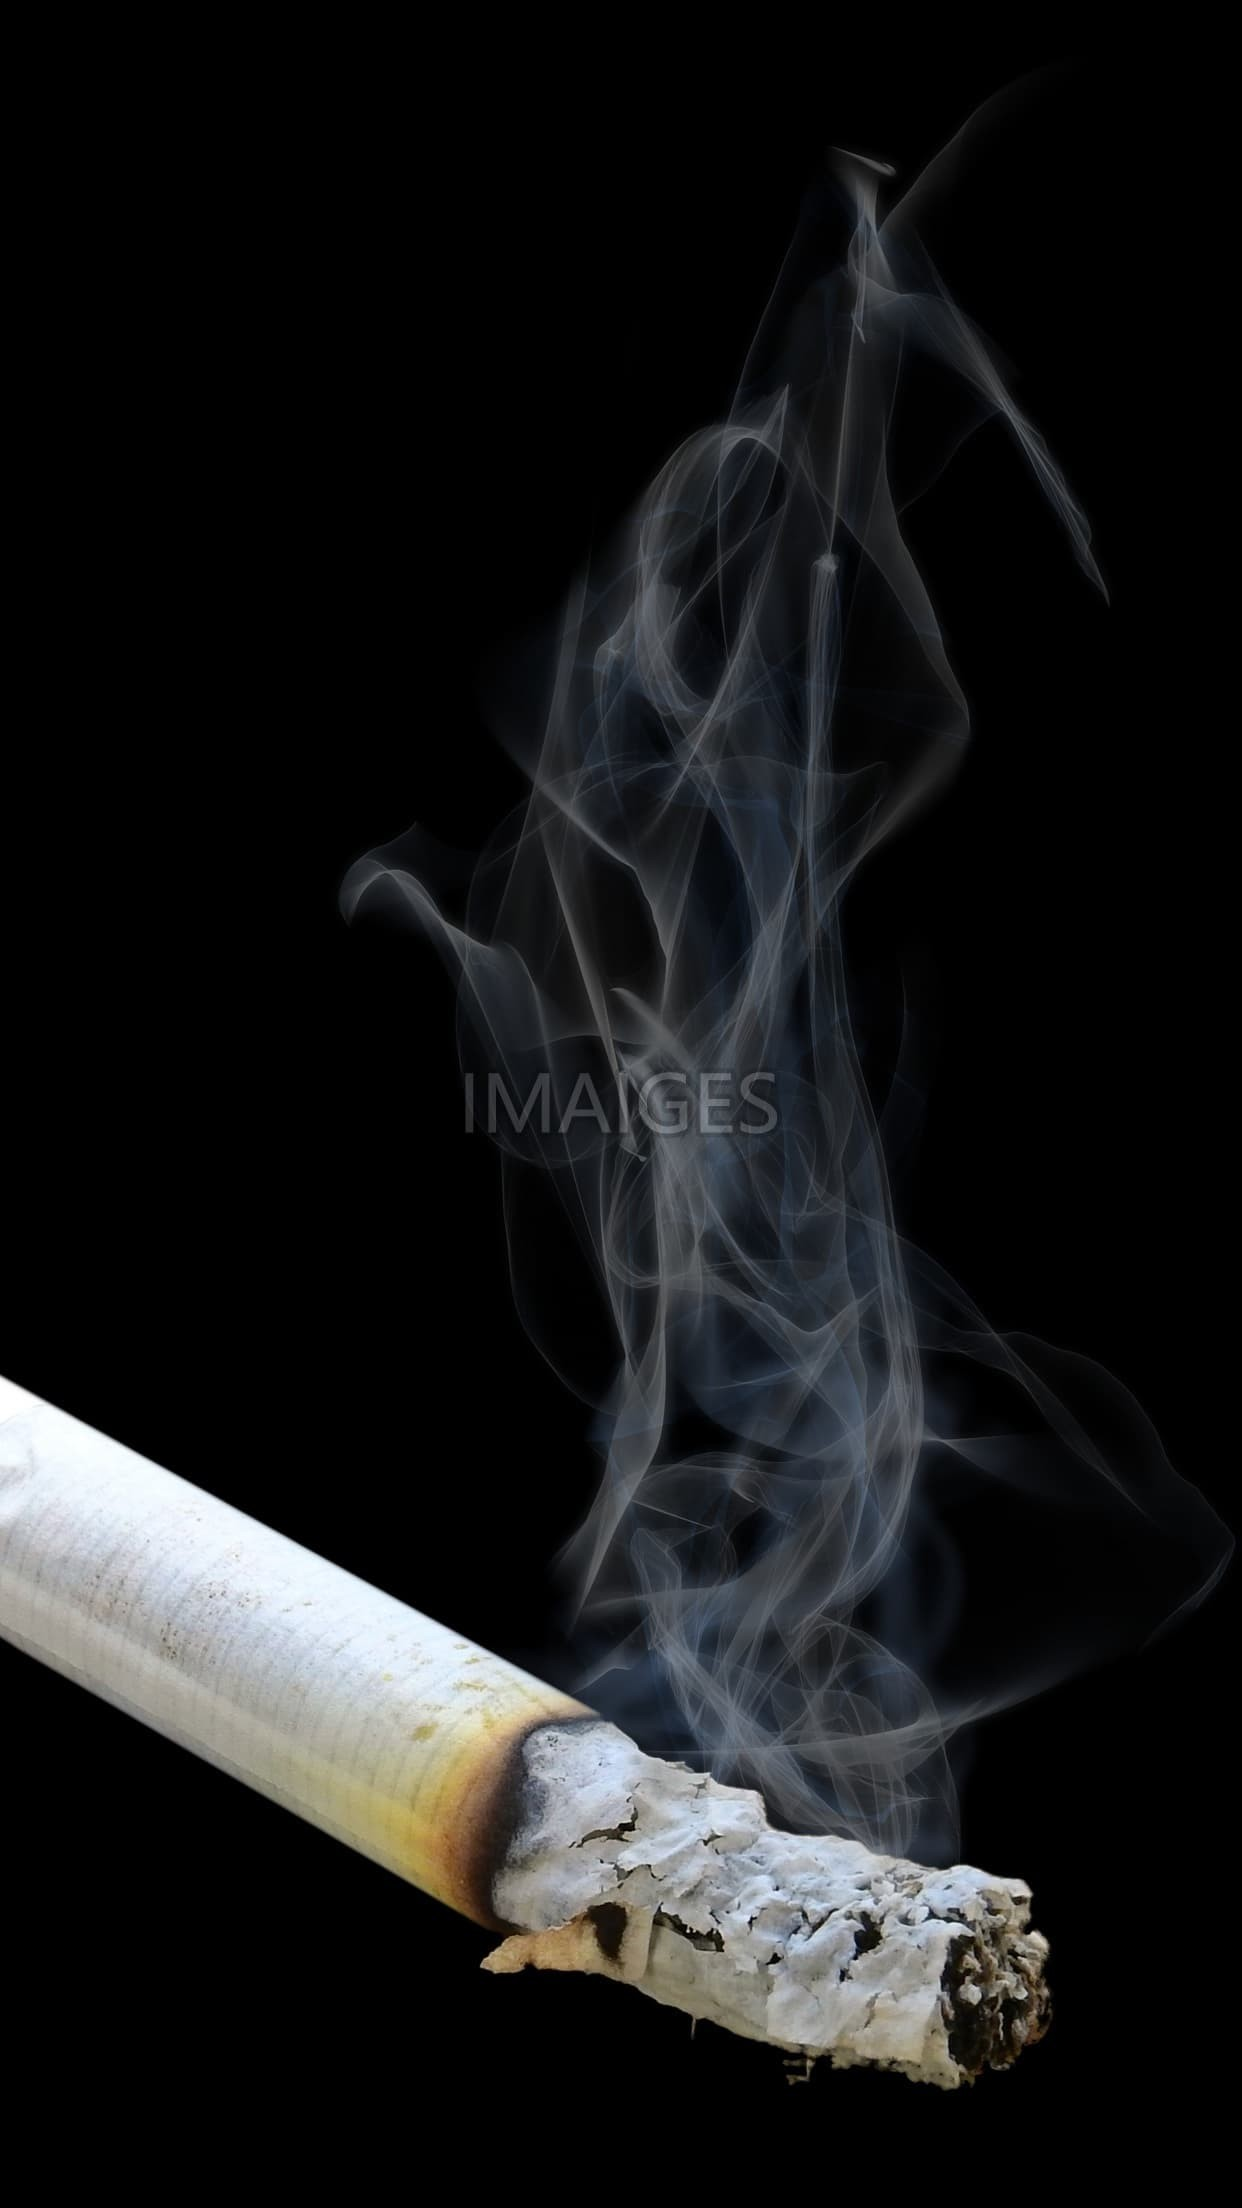 No Smoking Wallpaper 53 Images